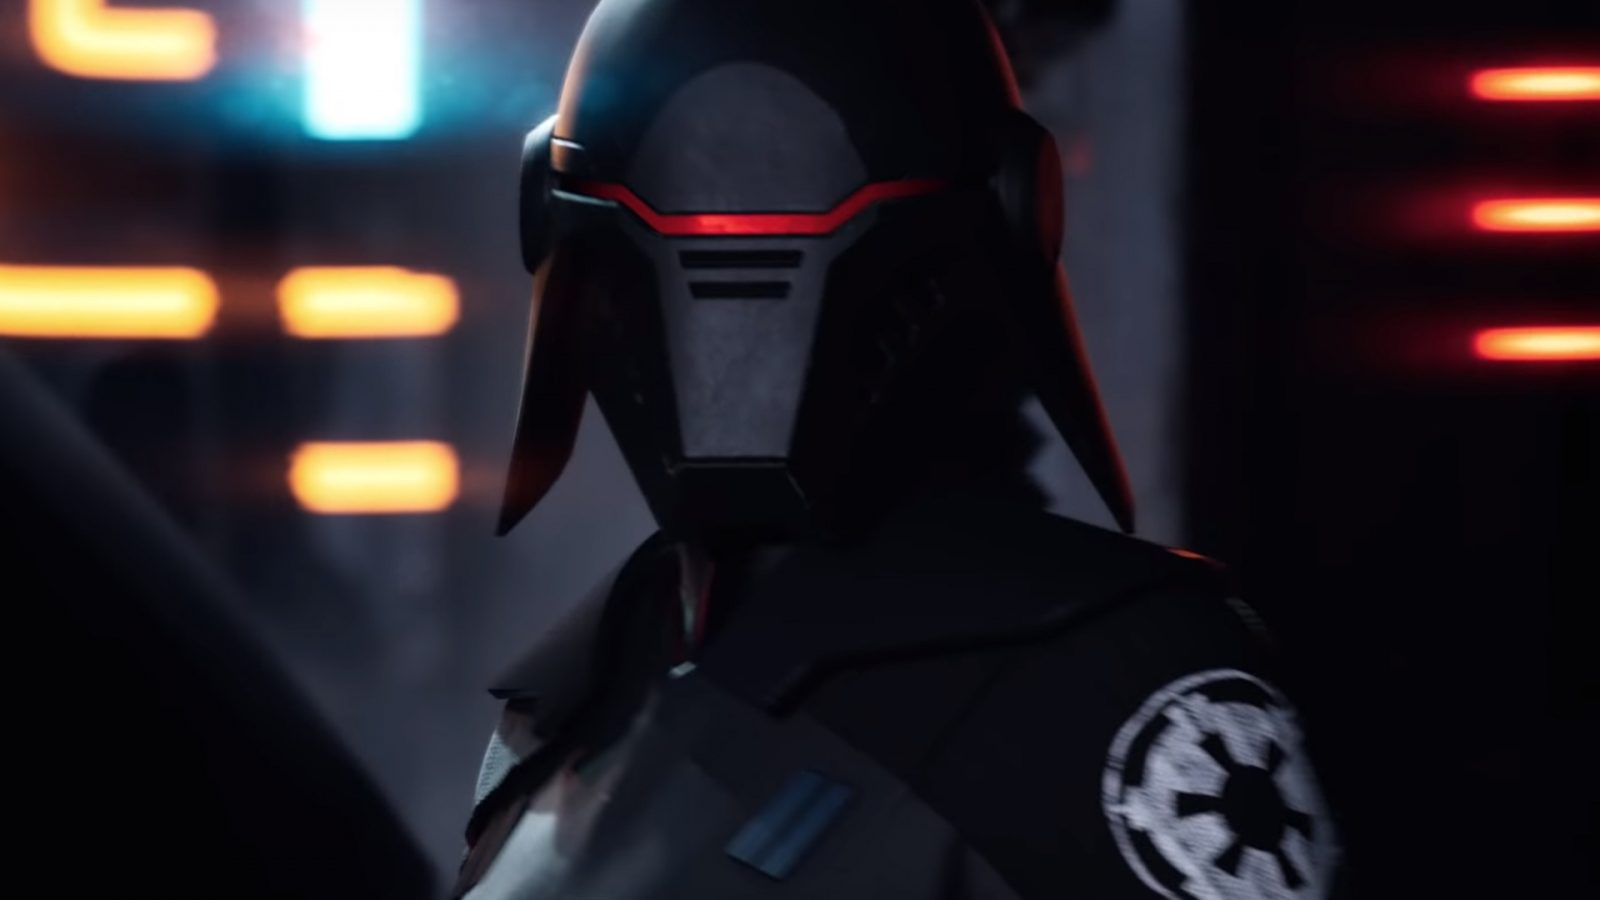 Star Wars Jedi: Fallen Order review roundup – here are the scores